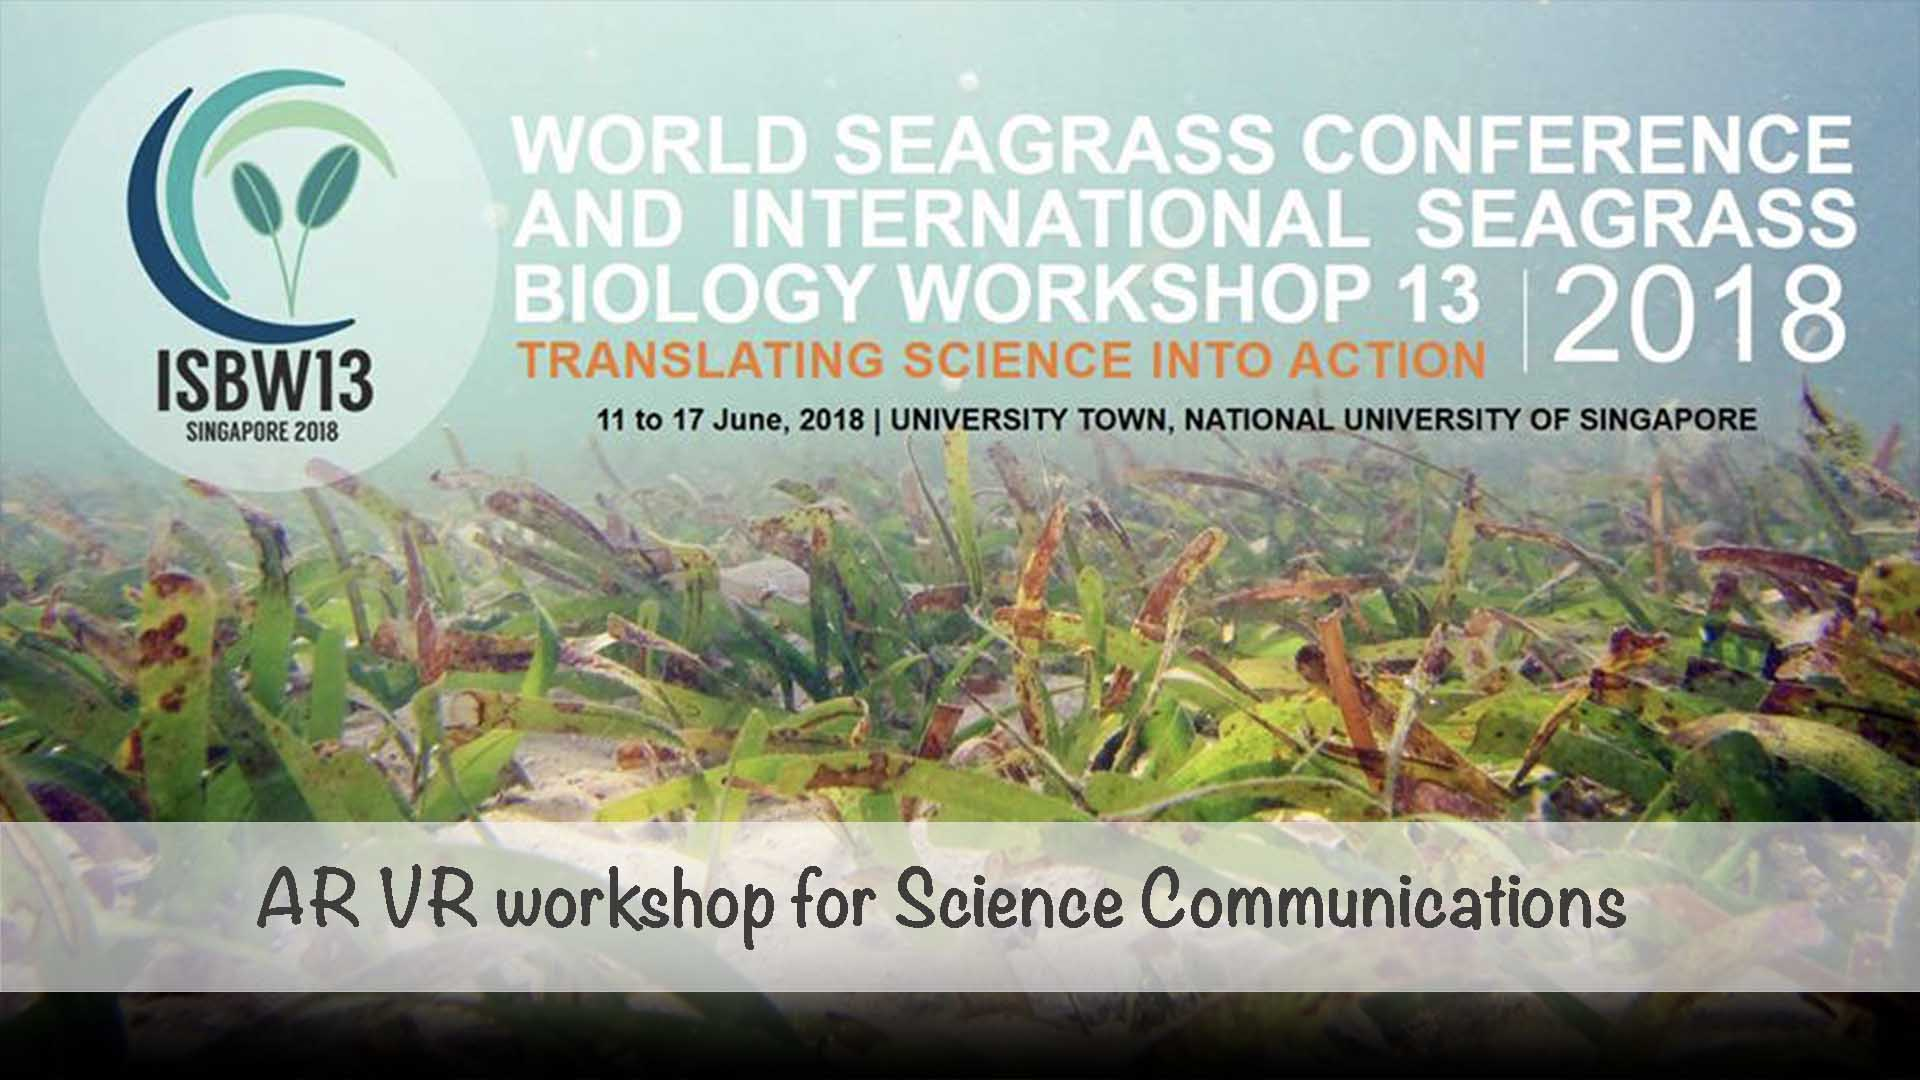 AR VR Workshops for for World Seagrass Conference